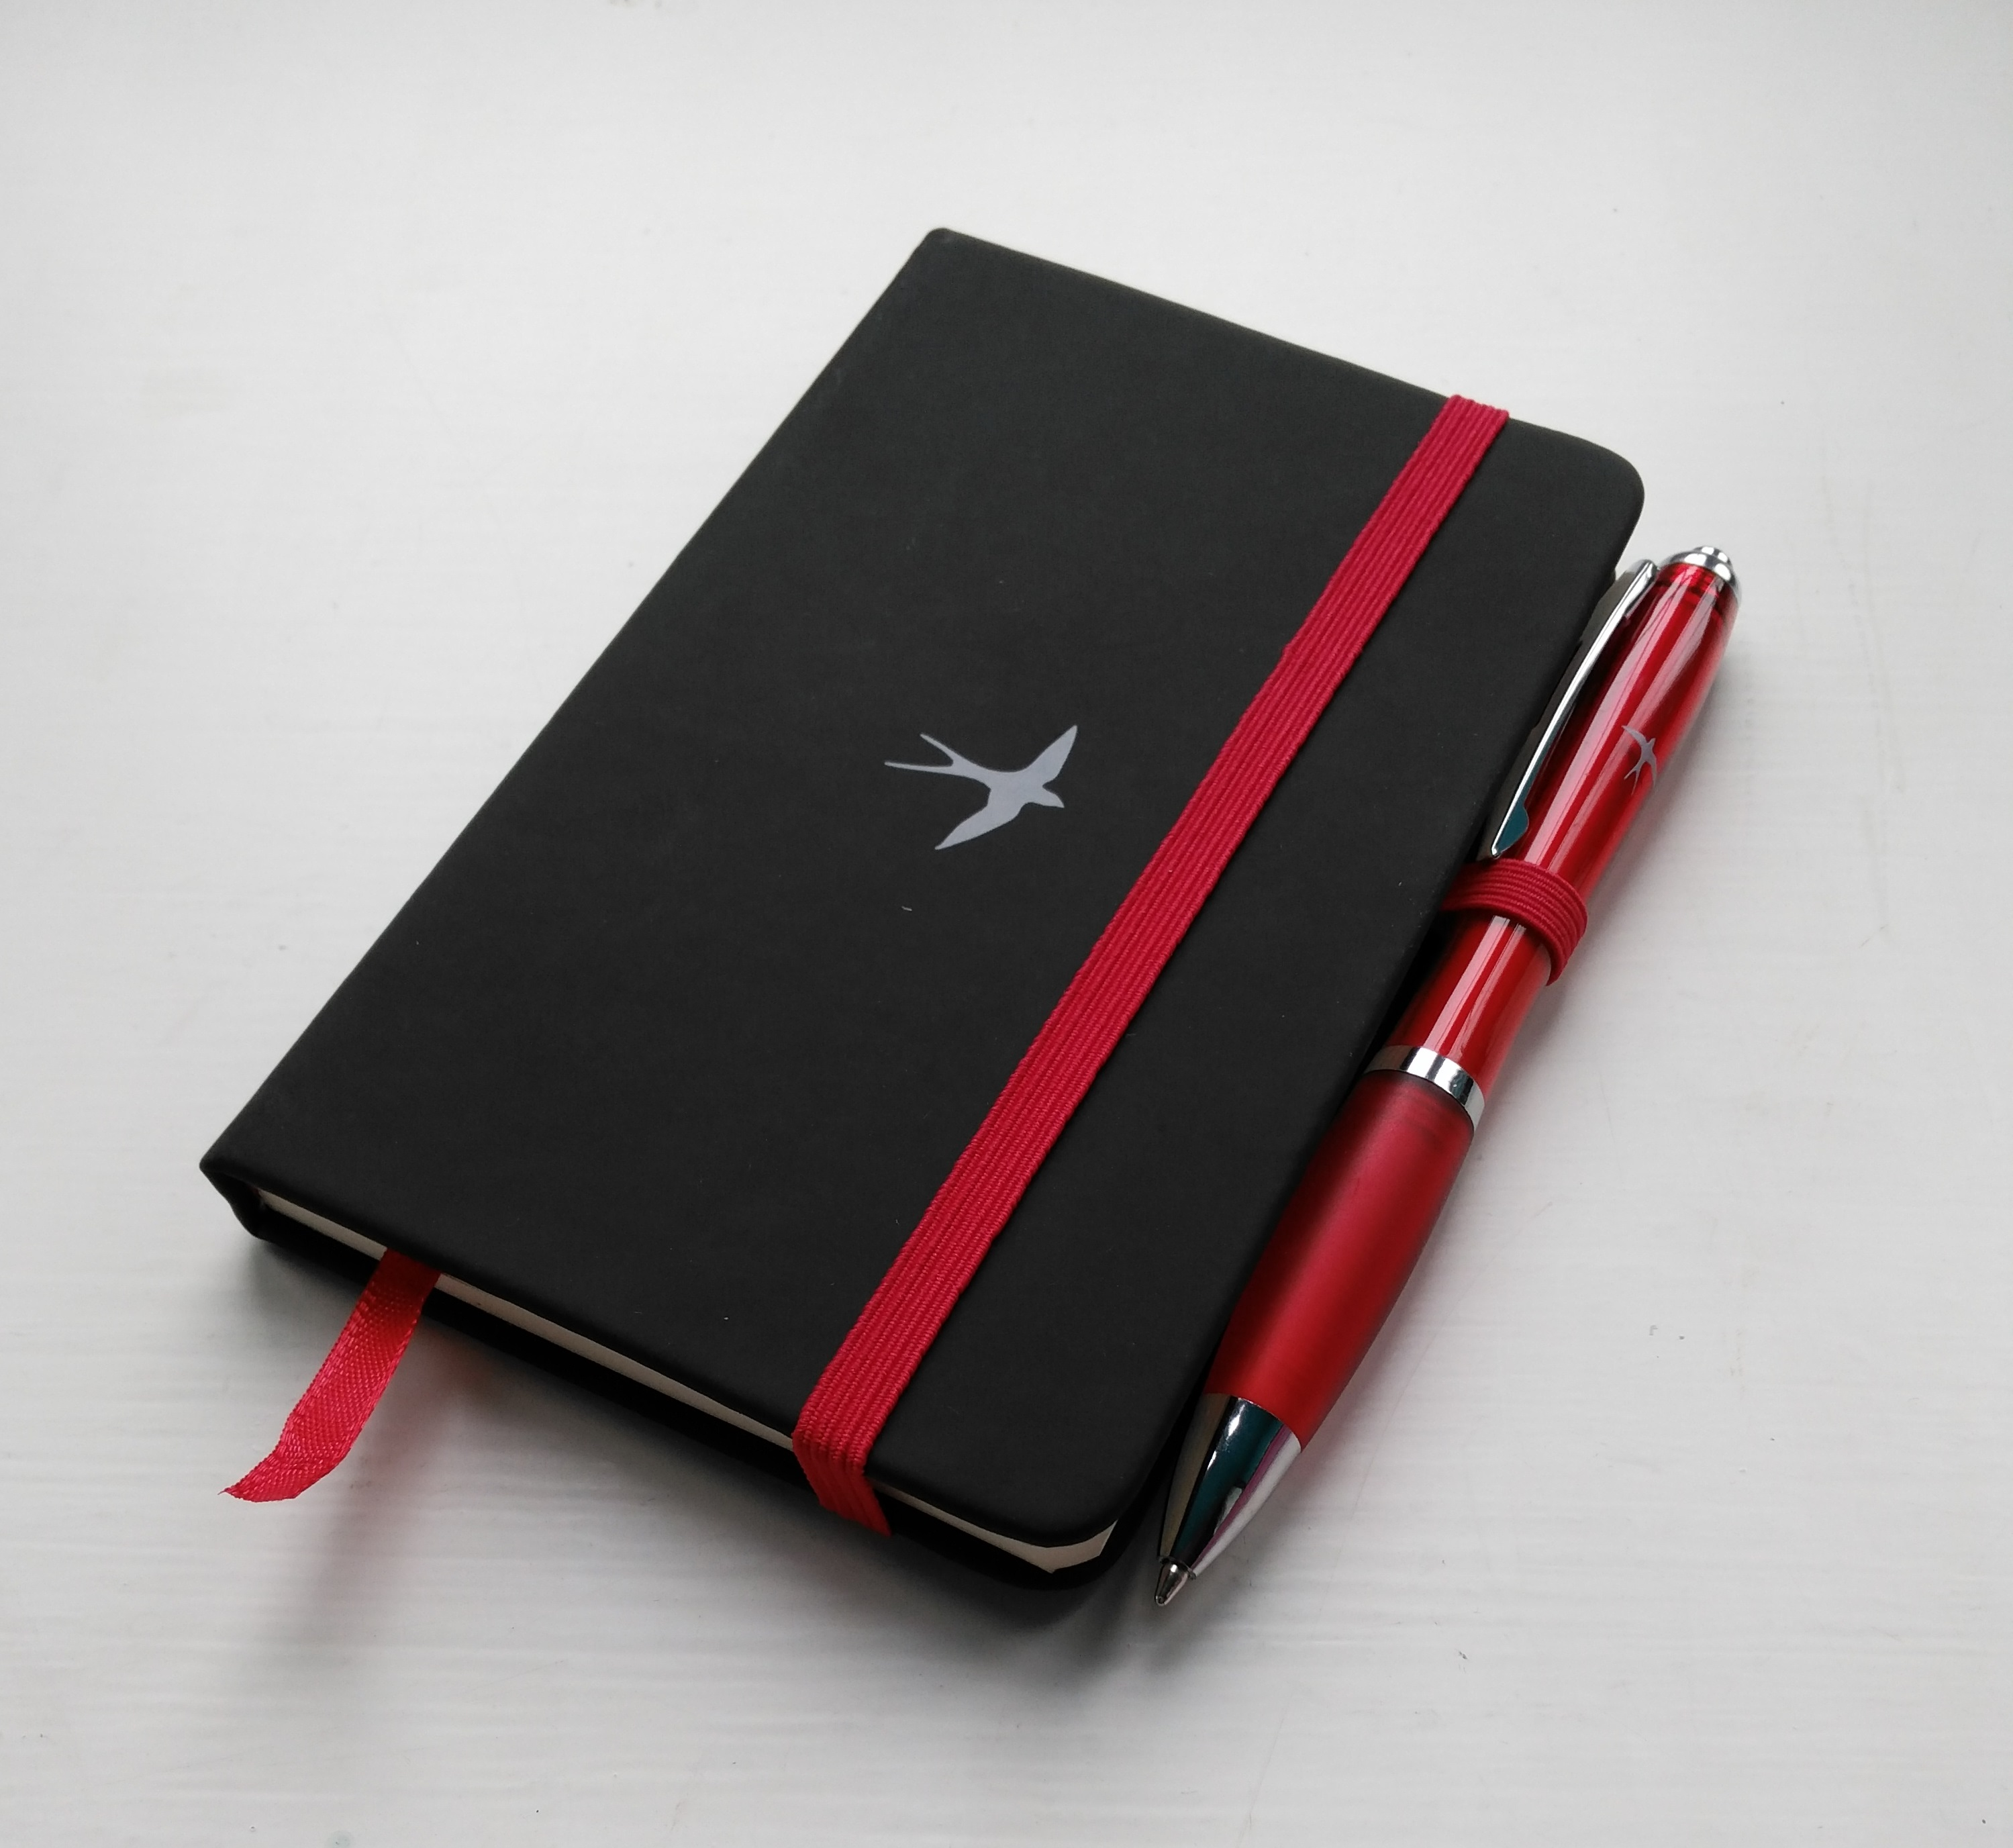 Notebook and Pen featuring Swallow logo